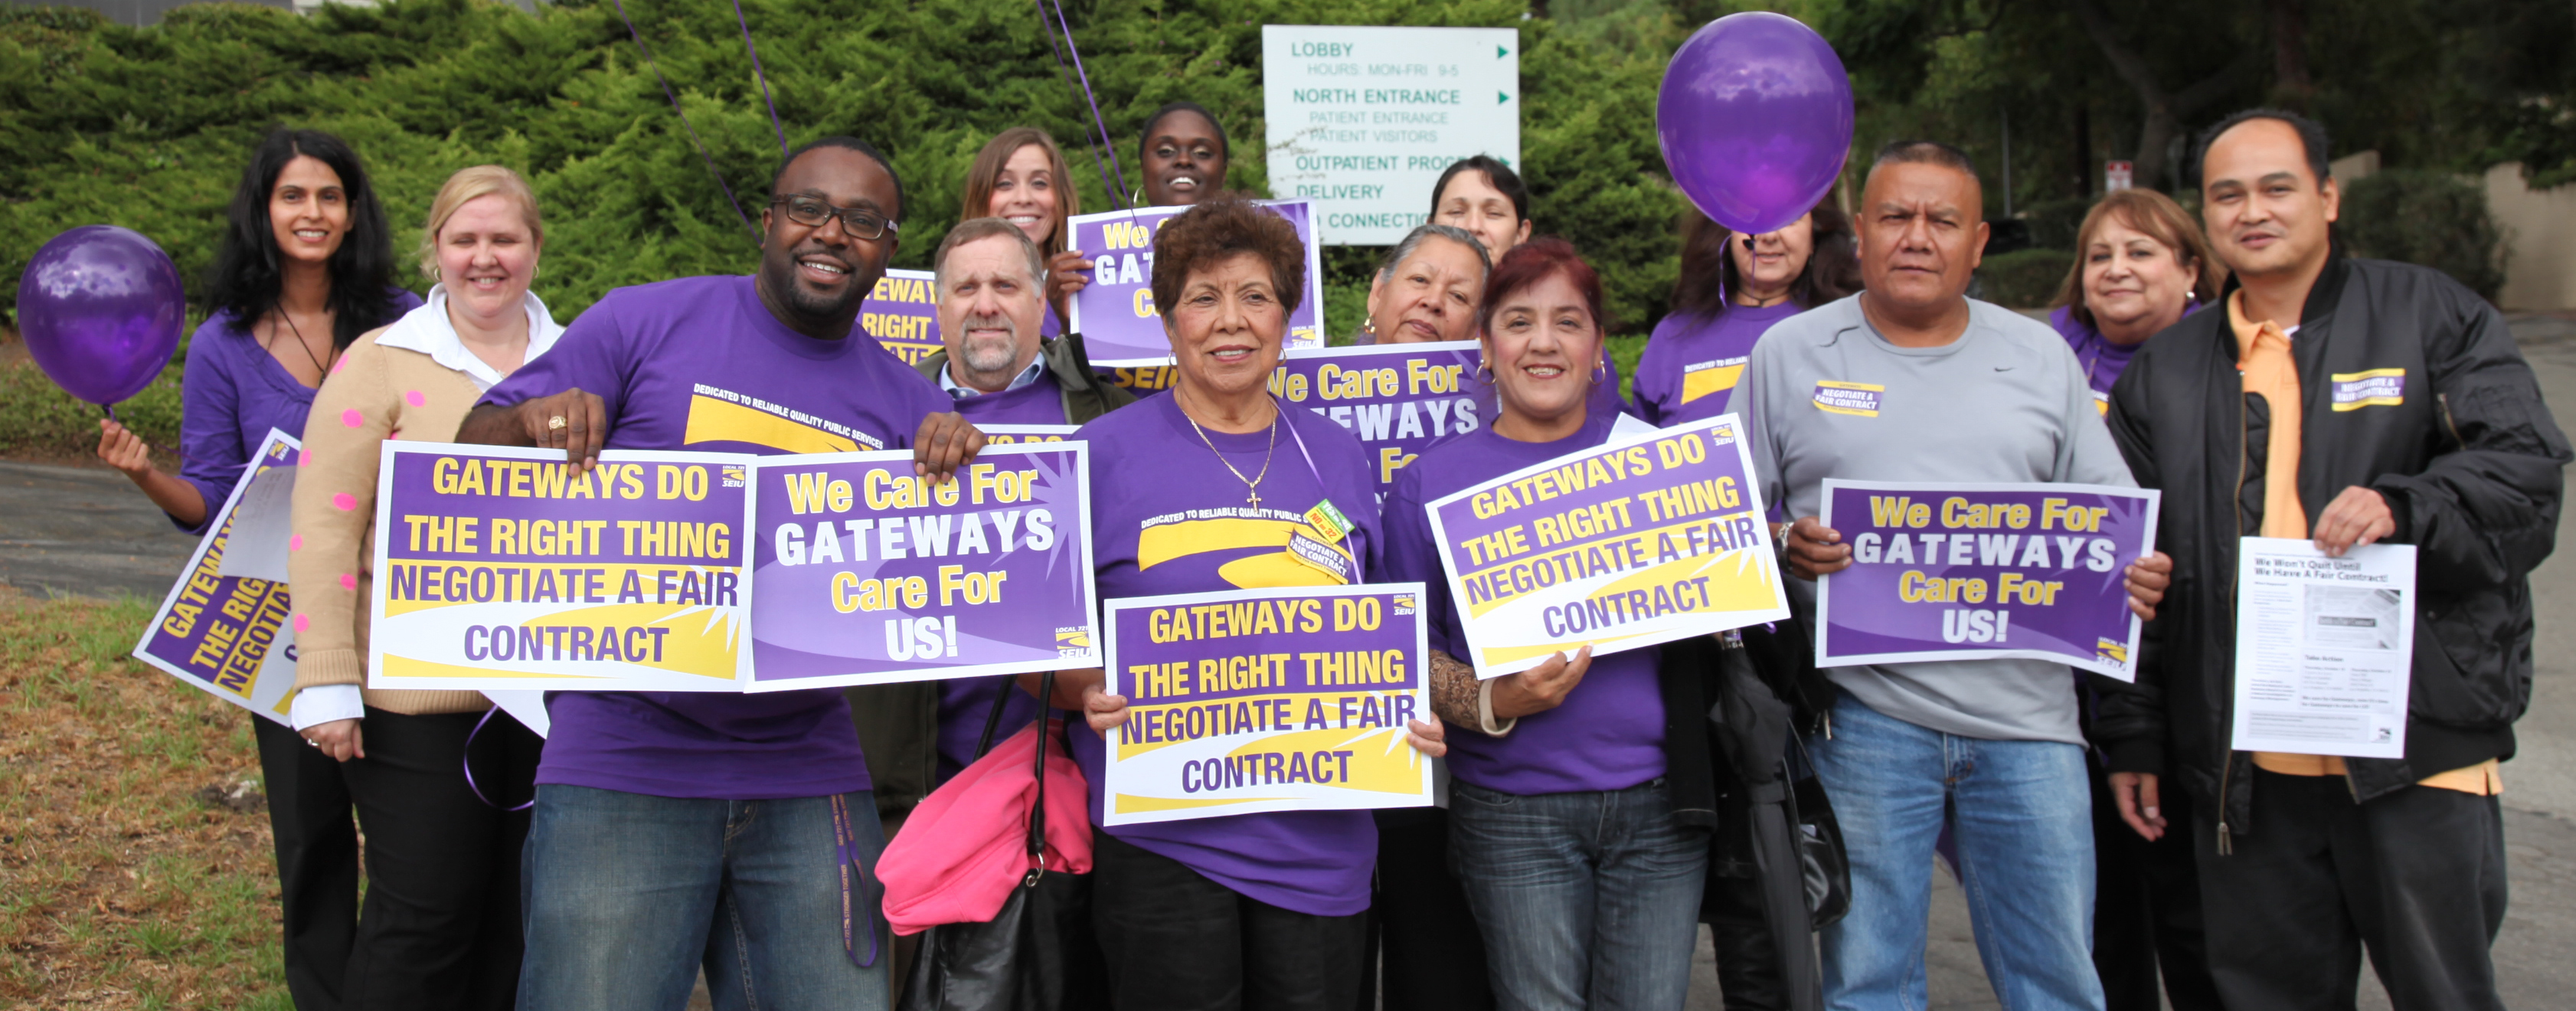 Gateways Workers Overwhelmingly Ratify New Contract Seiu Local 721